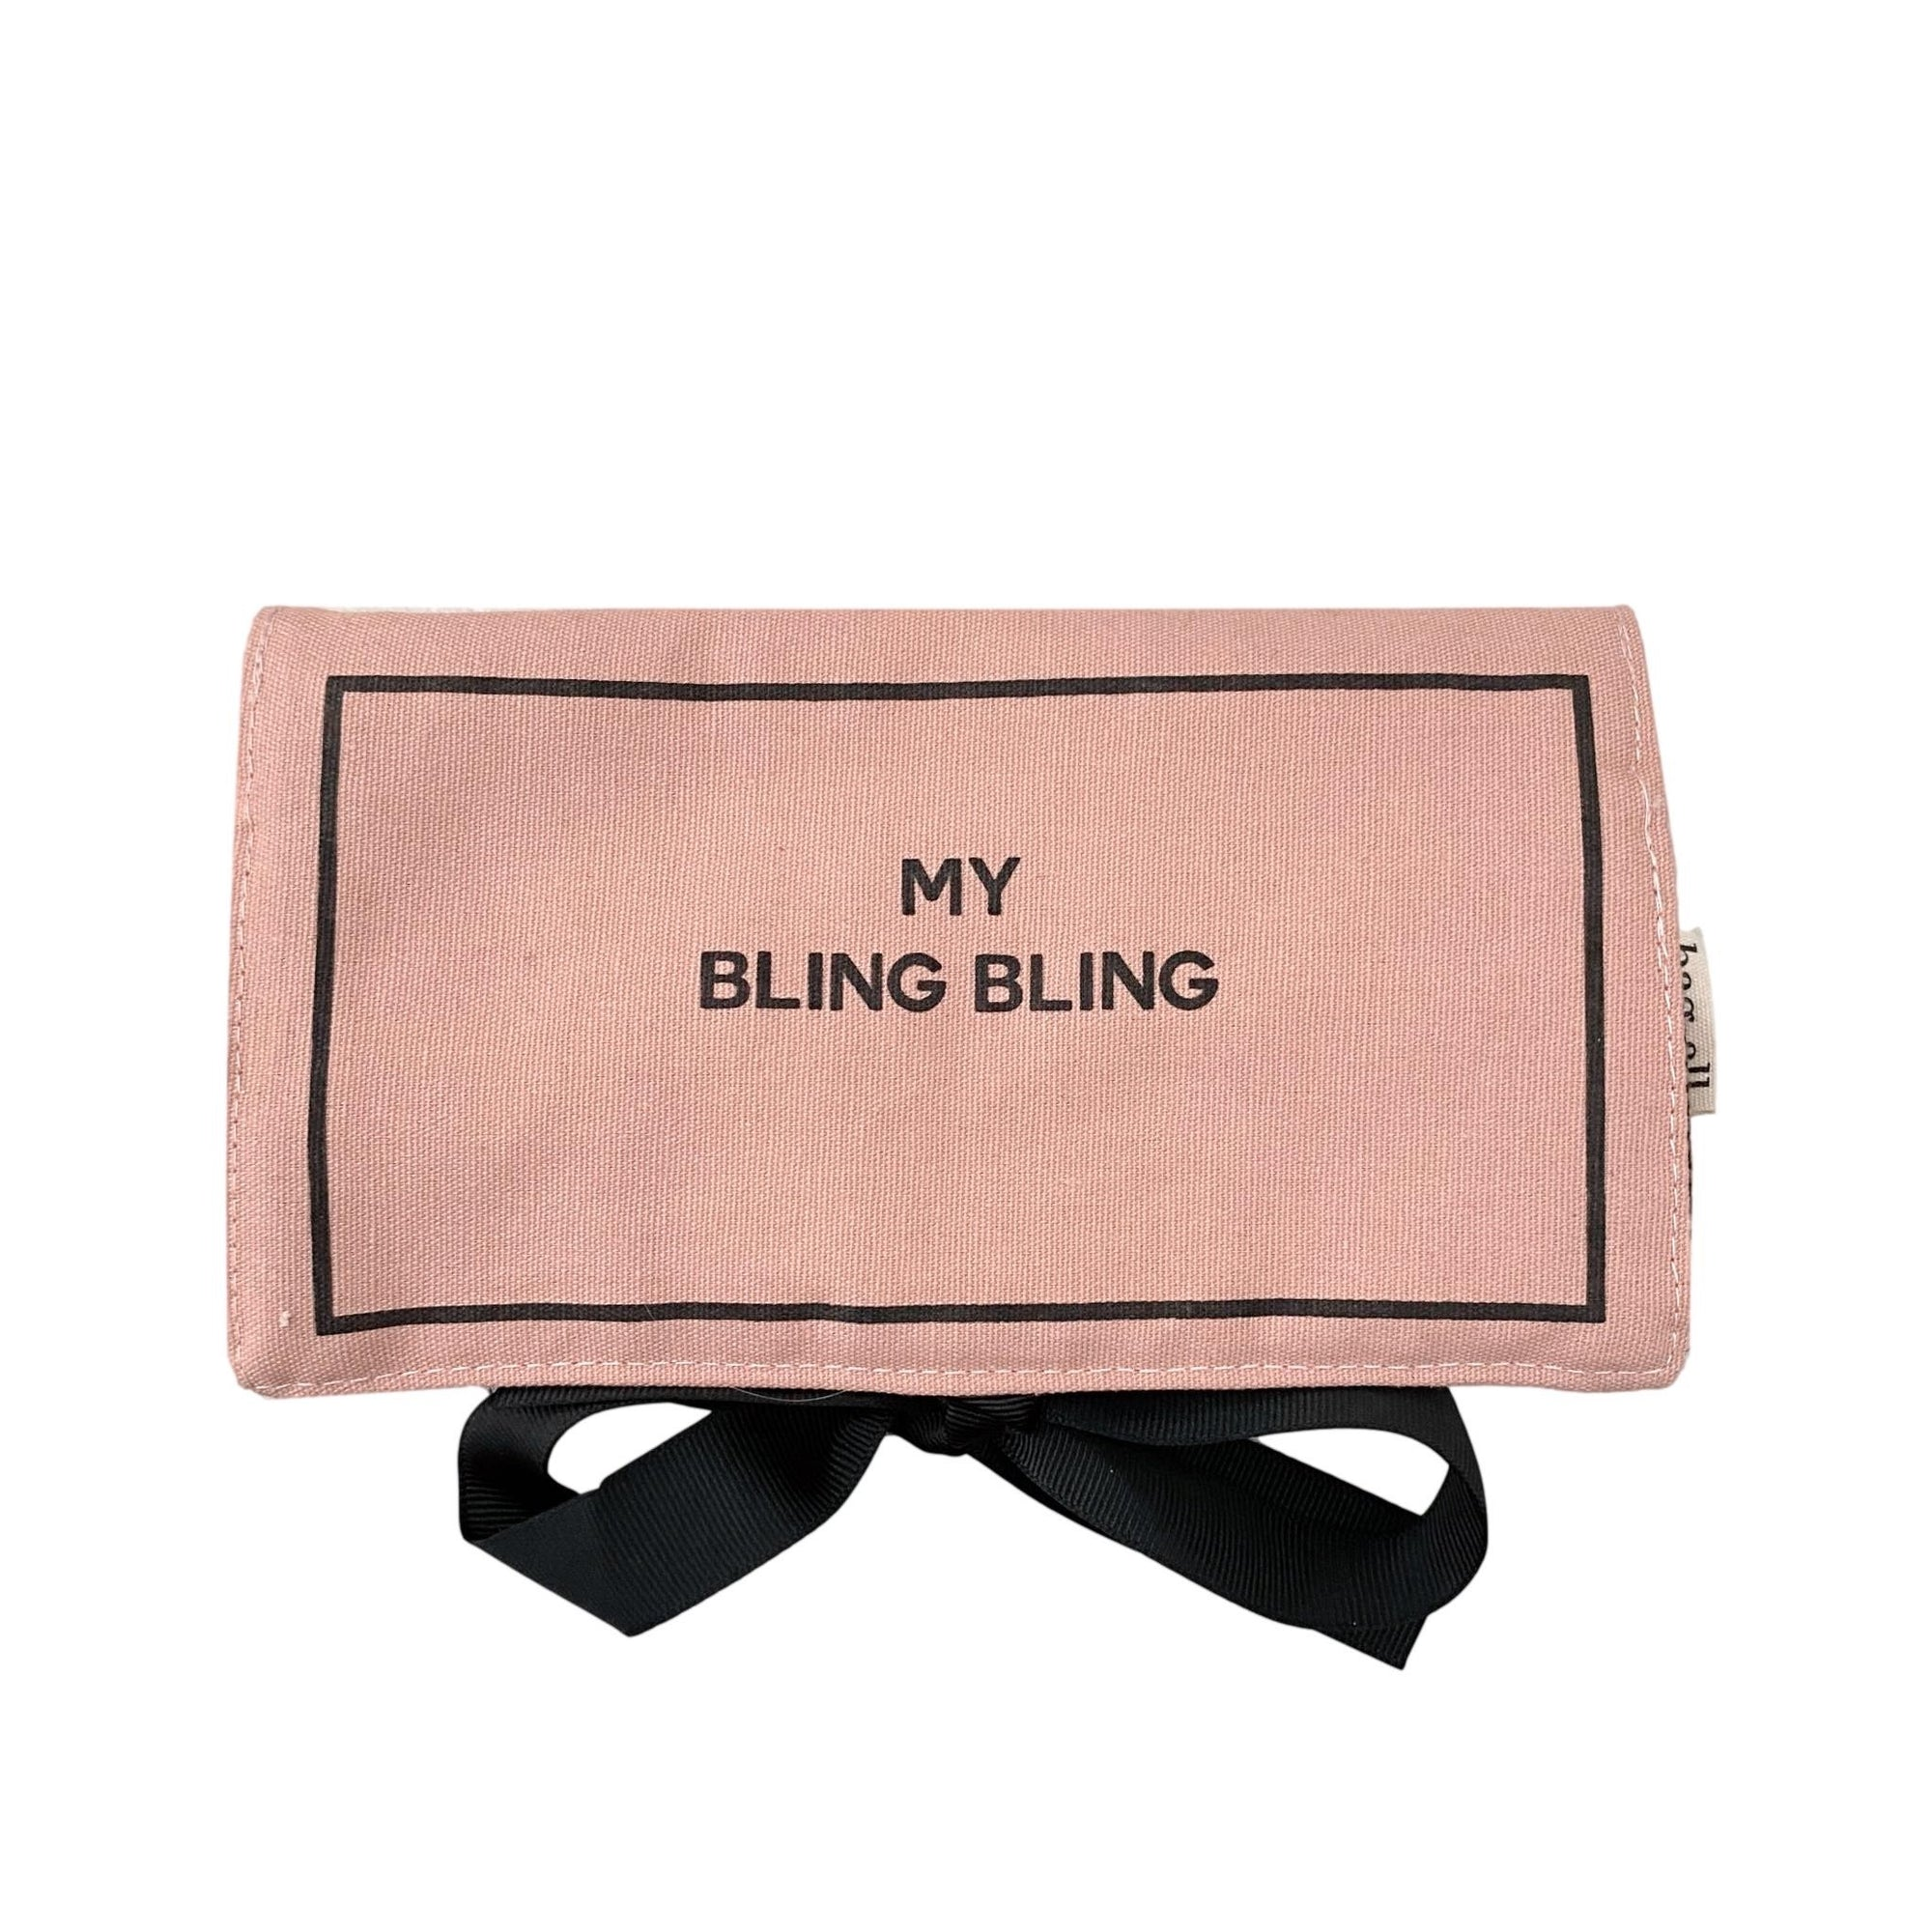 "Pink Jewelry case with ""my bling bling"" on the front in black."